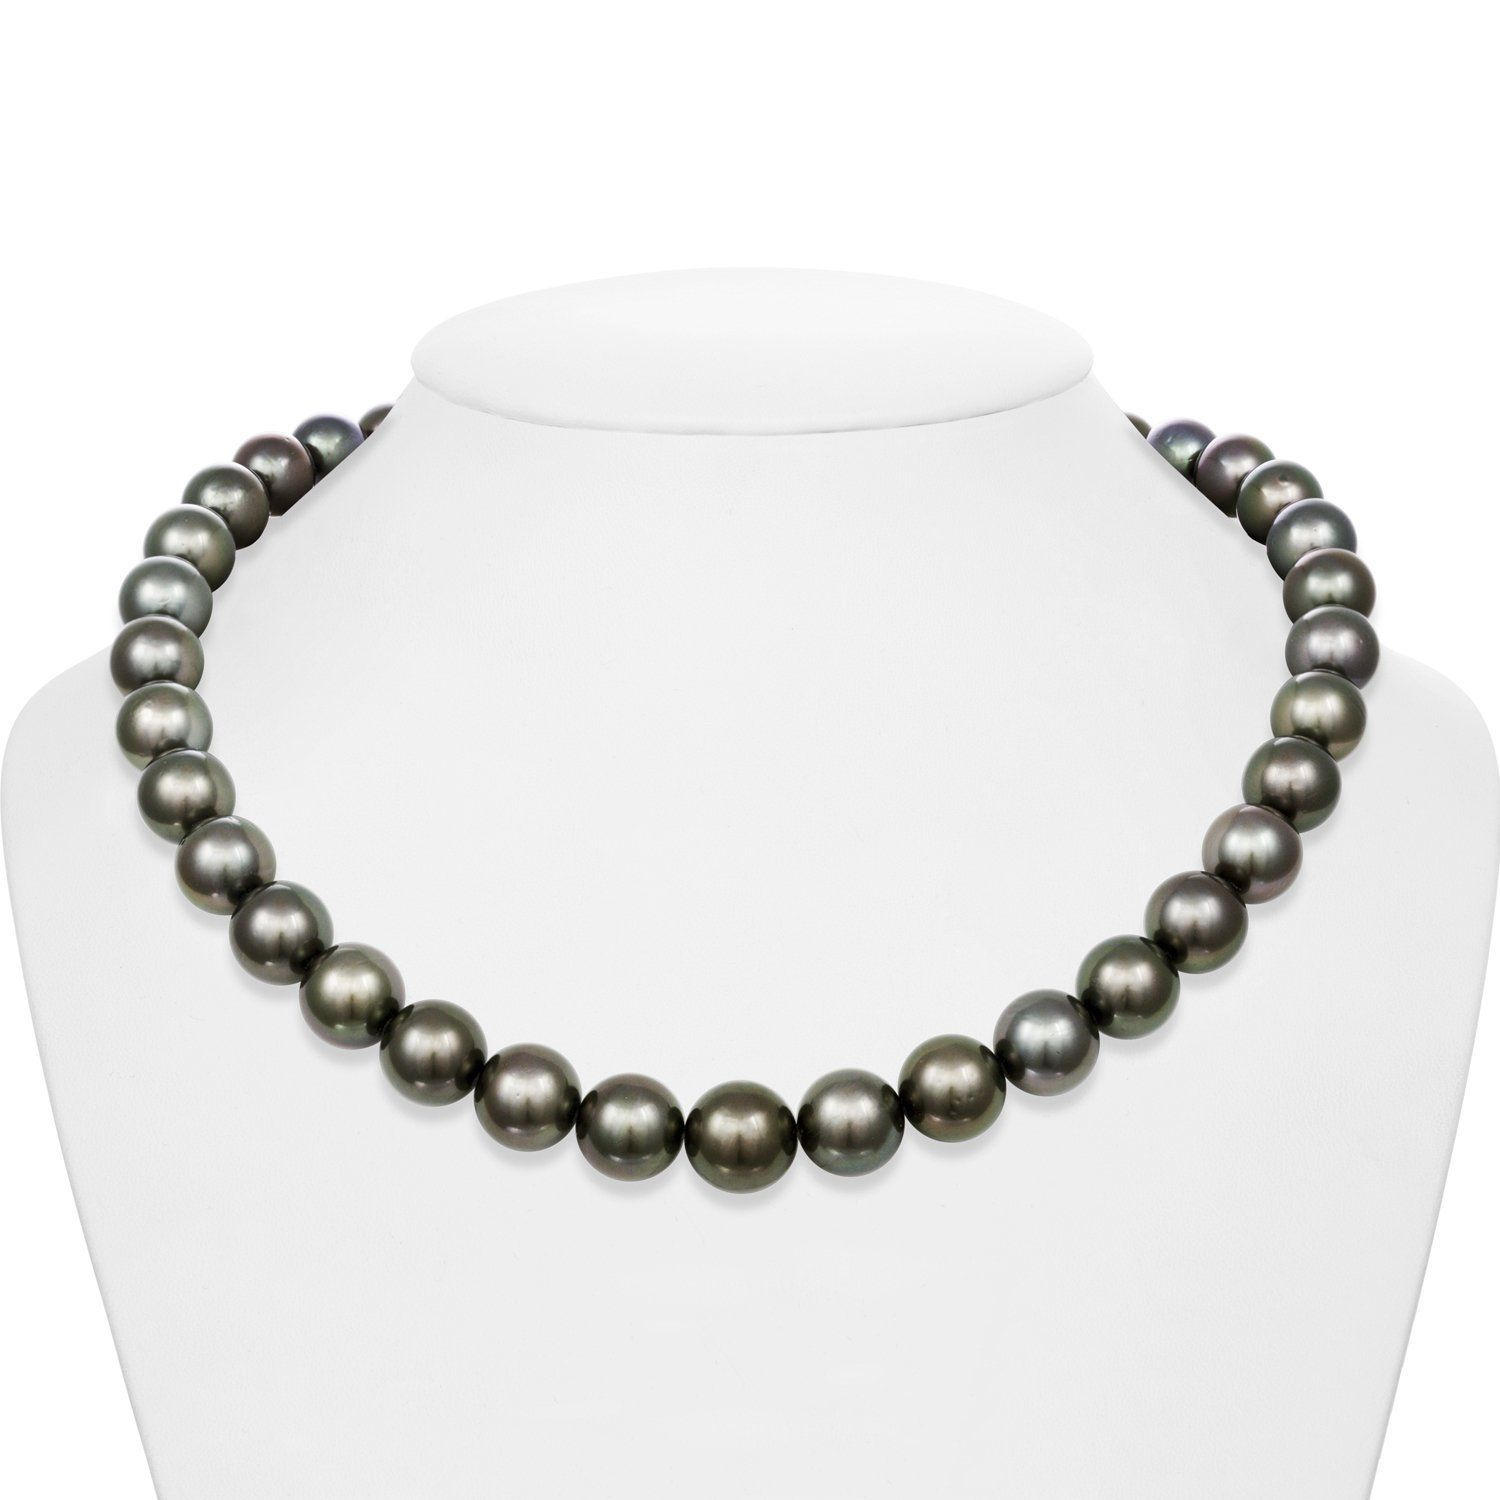 10.0-12.4 mm AA+/AAA Tahitian Round Pearl Necklace